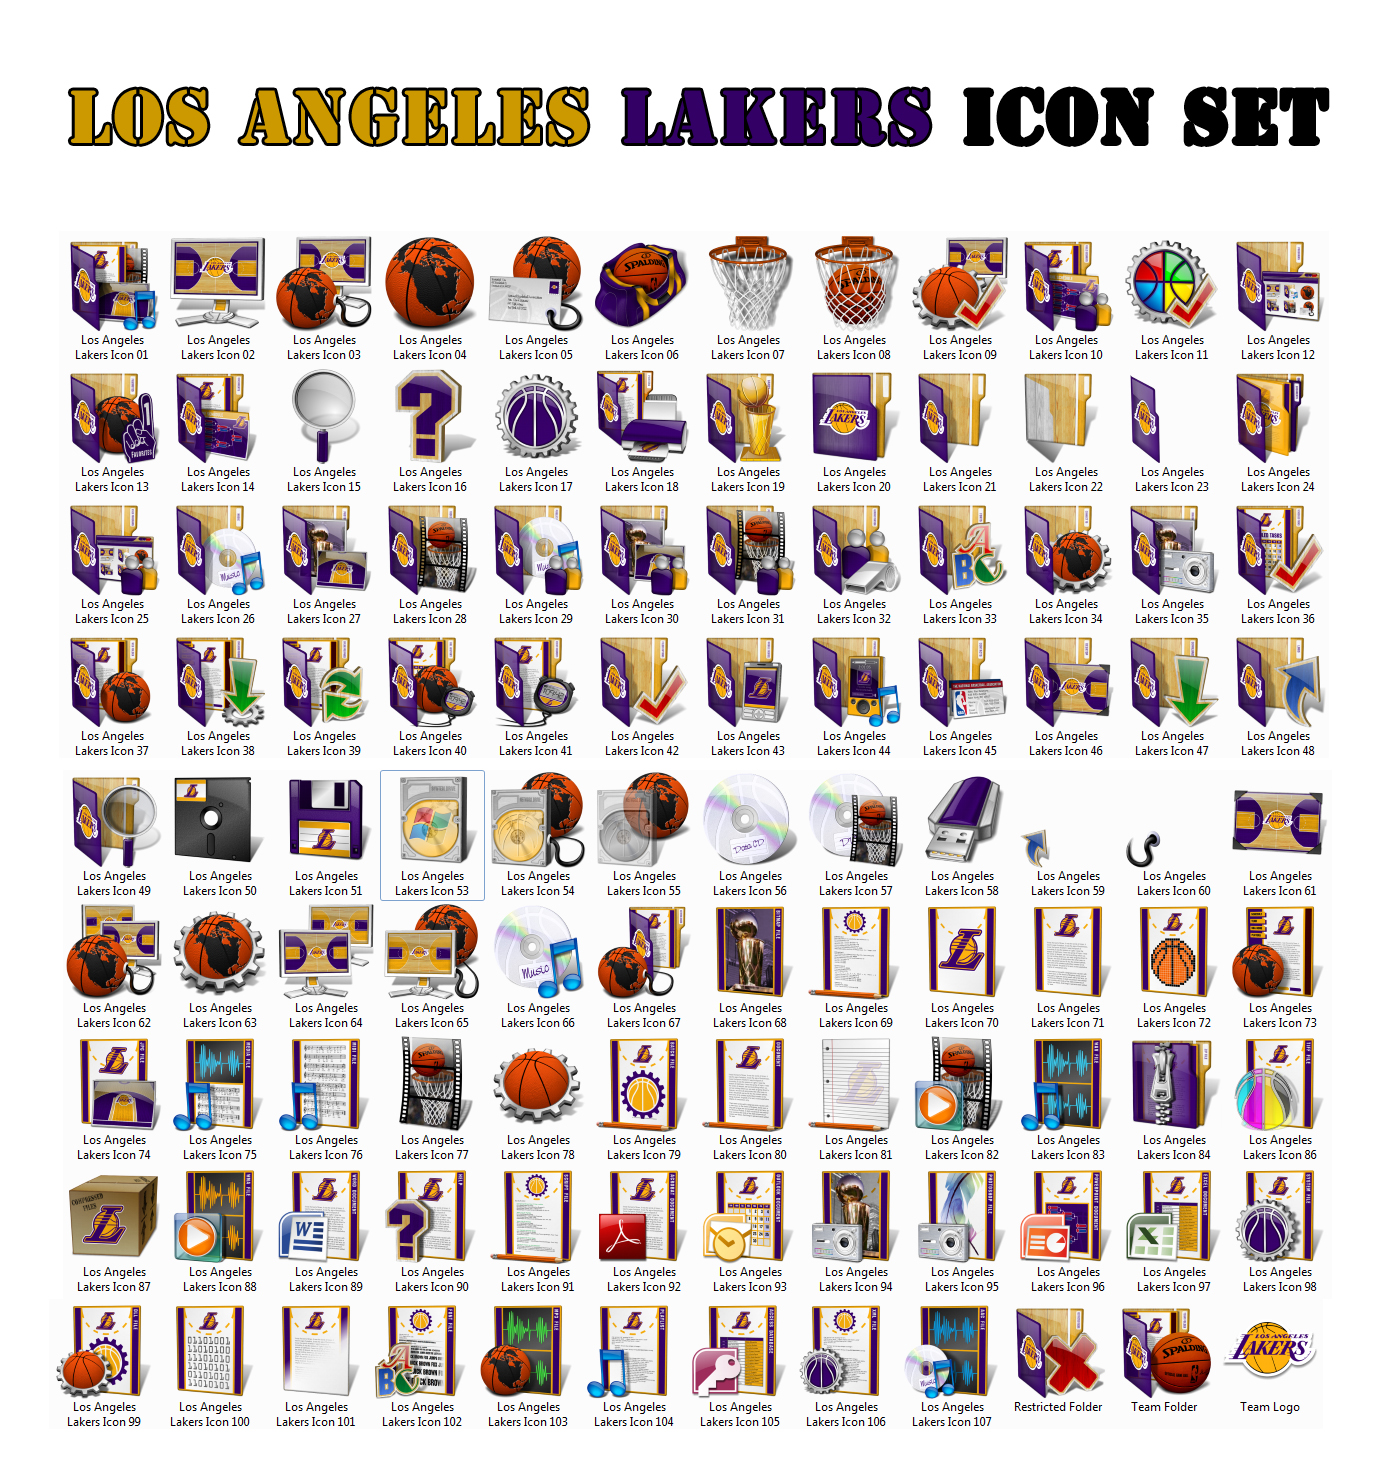 Los Angeles Lakers Icon Set by